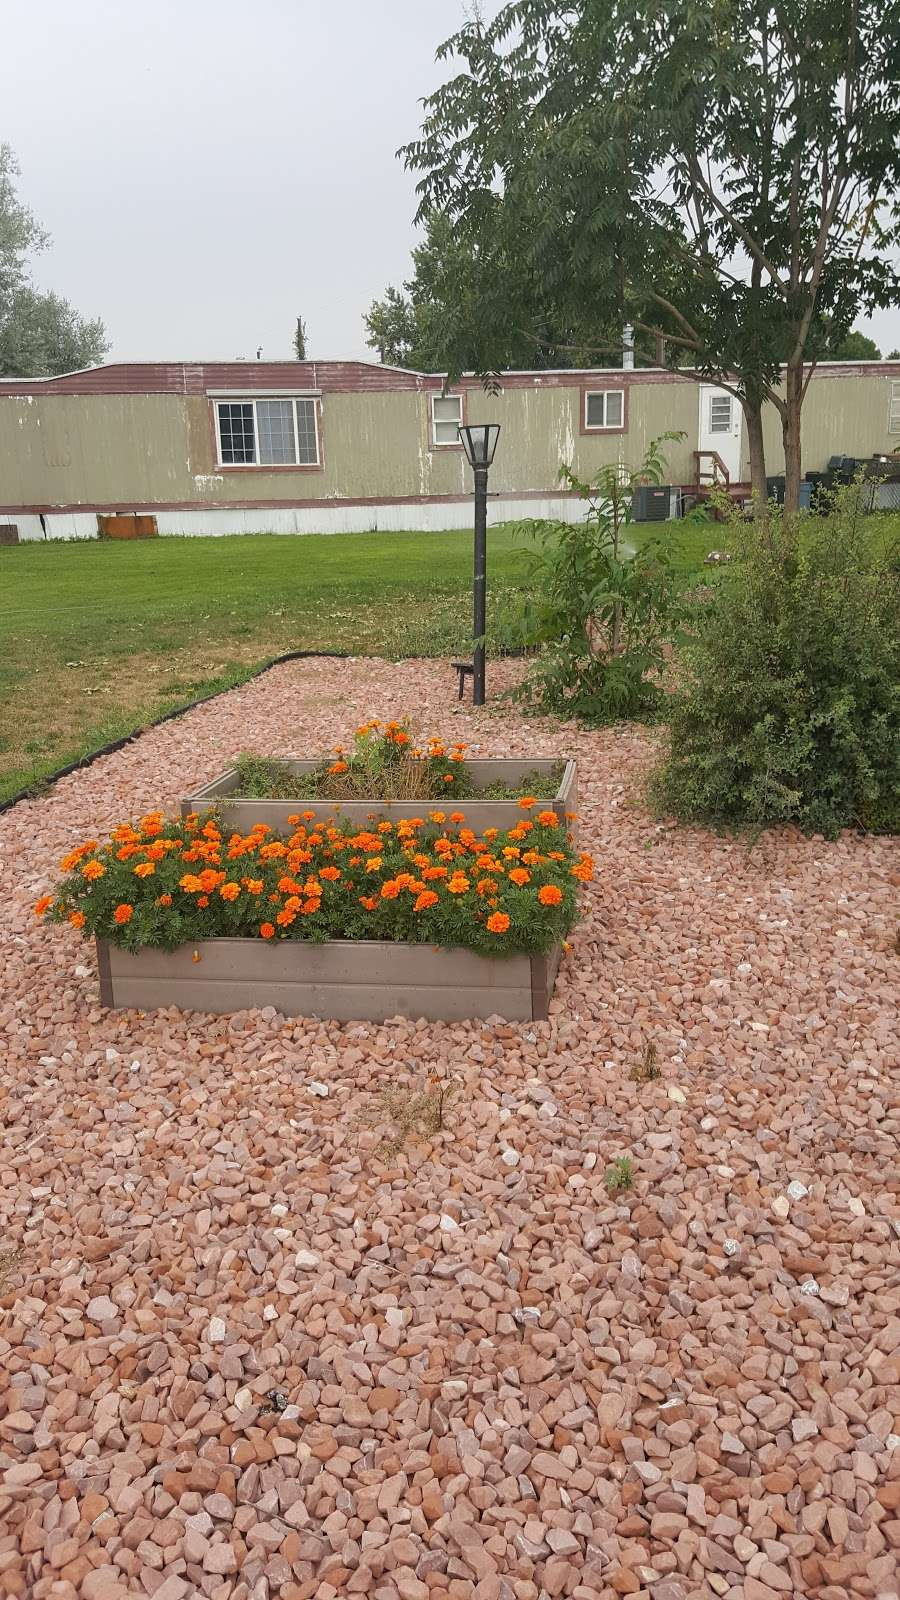 Country Estates Mobile Home Park - rv park    Photo 7 of 10   Address: 3500 35th Ave, Greeley, CO 80634, USA   Phone: (970) 330-2690